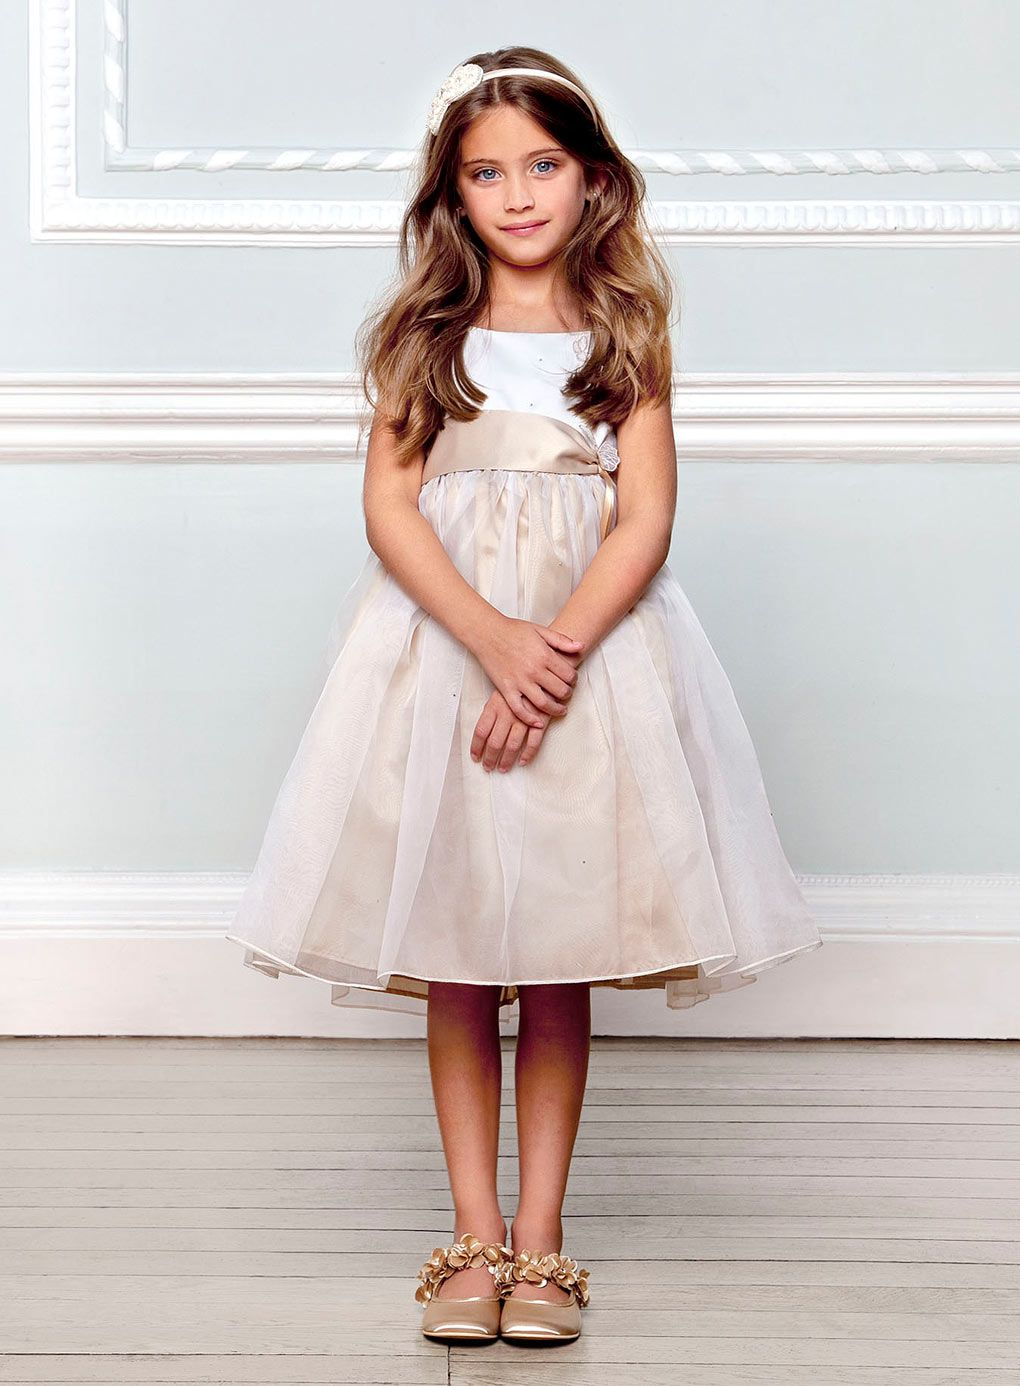 Lela butterfly champagne bridesmaid dress bhs fairytale dreams lela butterfly champagne bridesmaid dress use for flower girl ombrellifo Choice Image